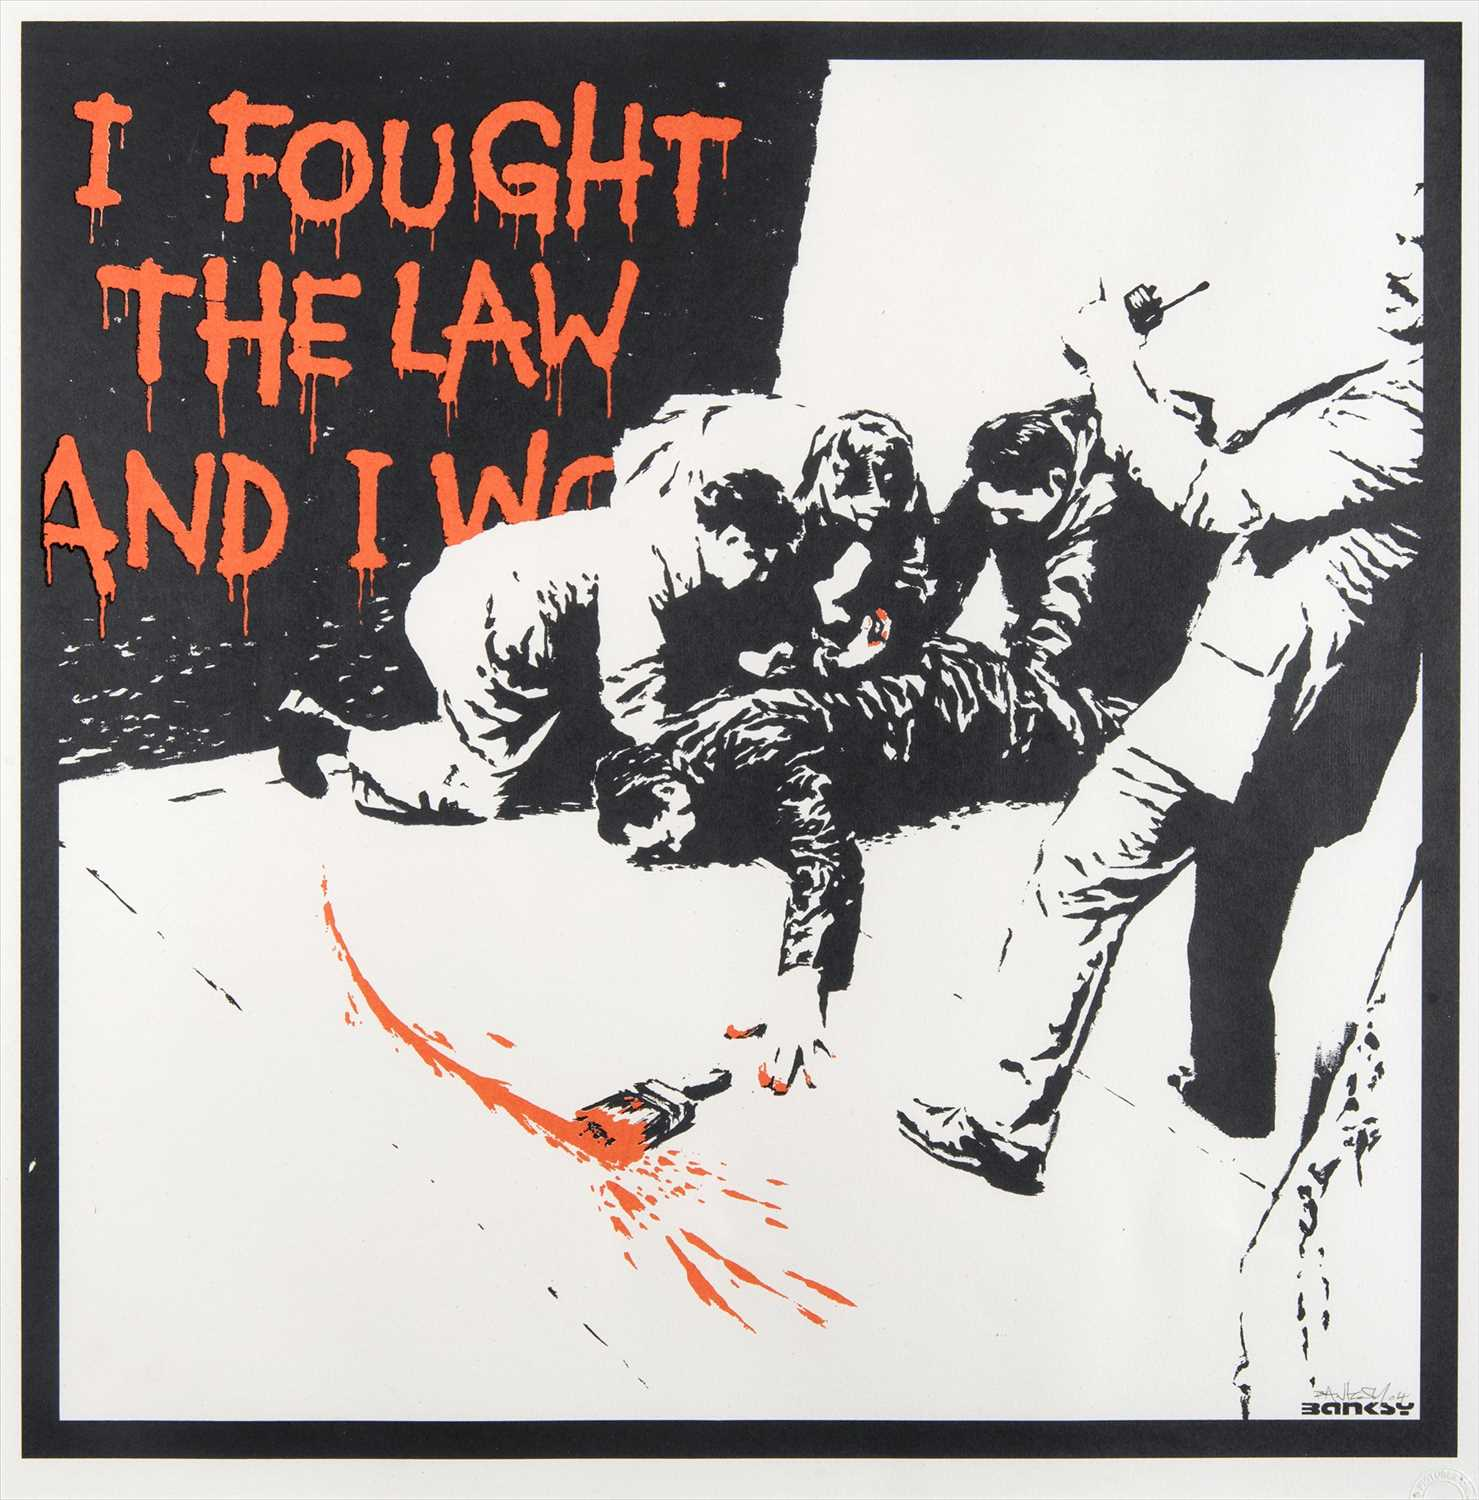 Lot 67 - Banksy (British 1974-), 'I Fought The Law', 2004